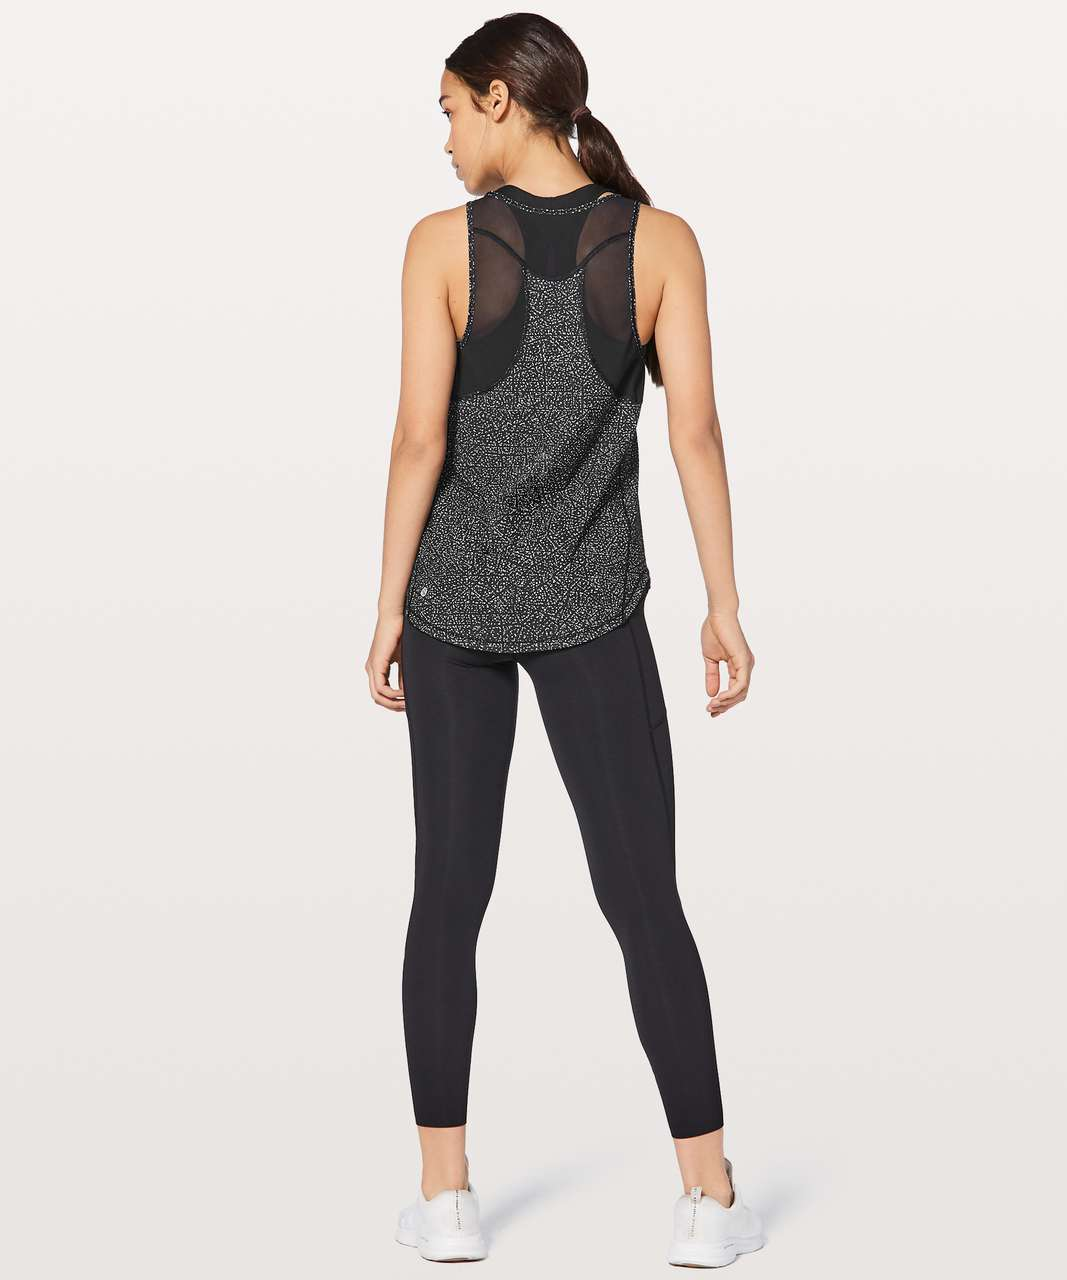 Lululemon Sculpt Tank II - Night View White Black / Black (First Release)